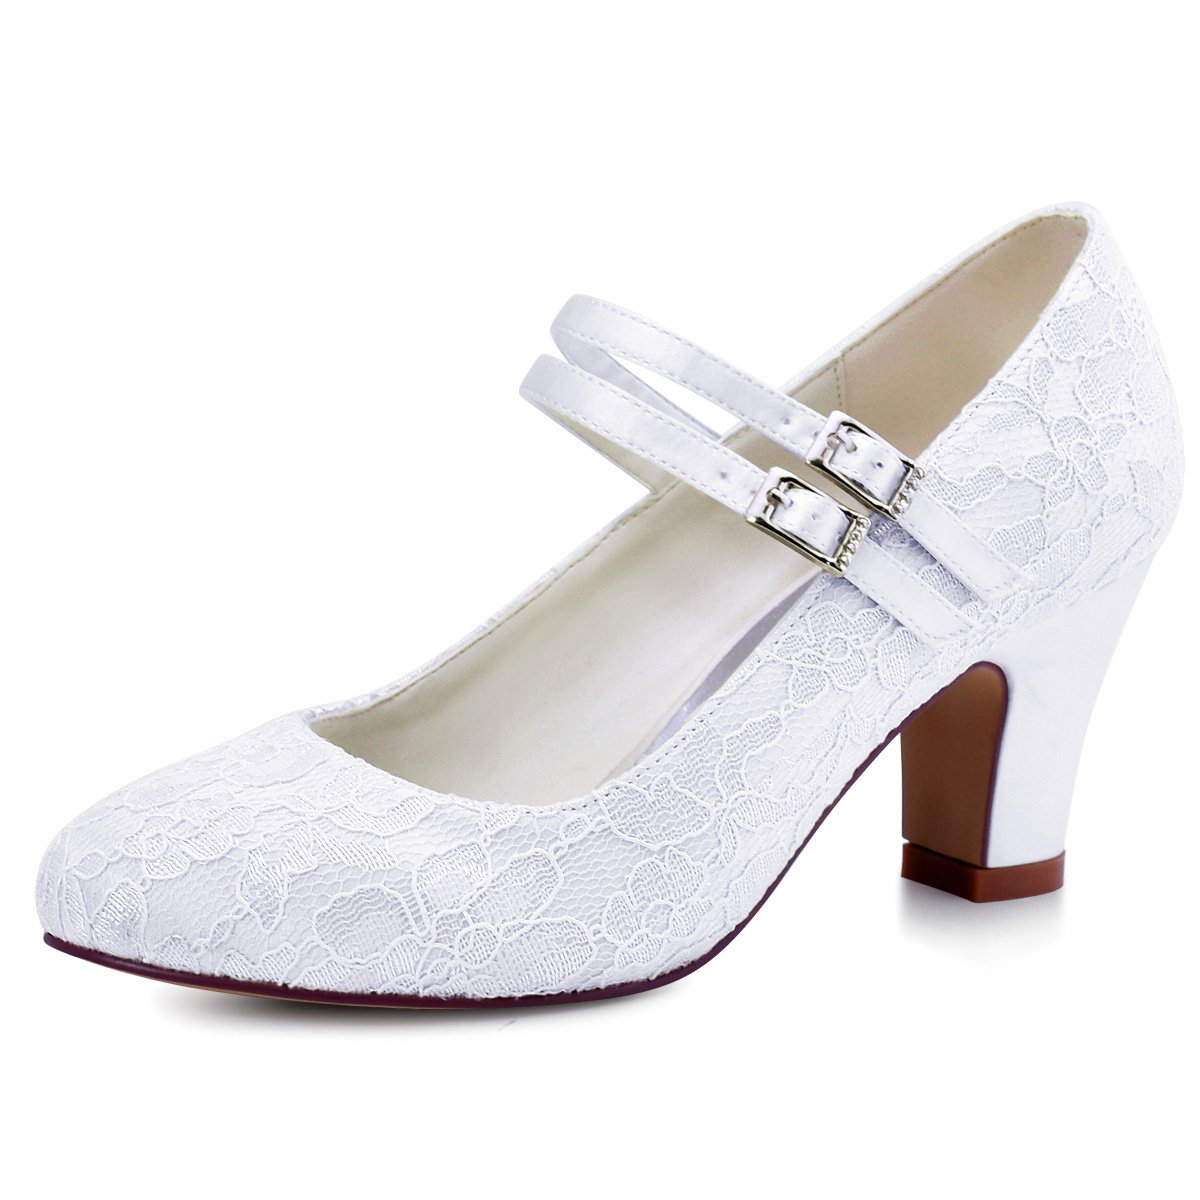 ElegantPark HC1708 Women Mary Jane Block Heel Pumps Closed Toe Lace Bridal Wedding Shoes White US 9